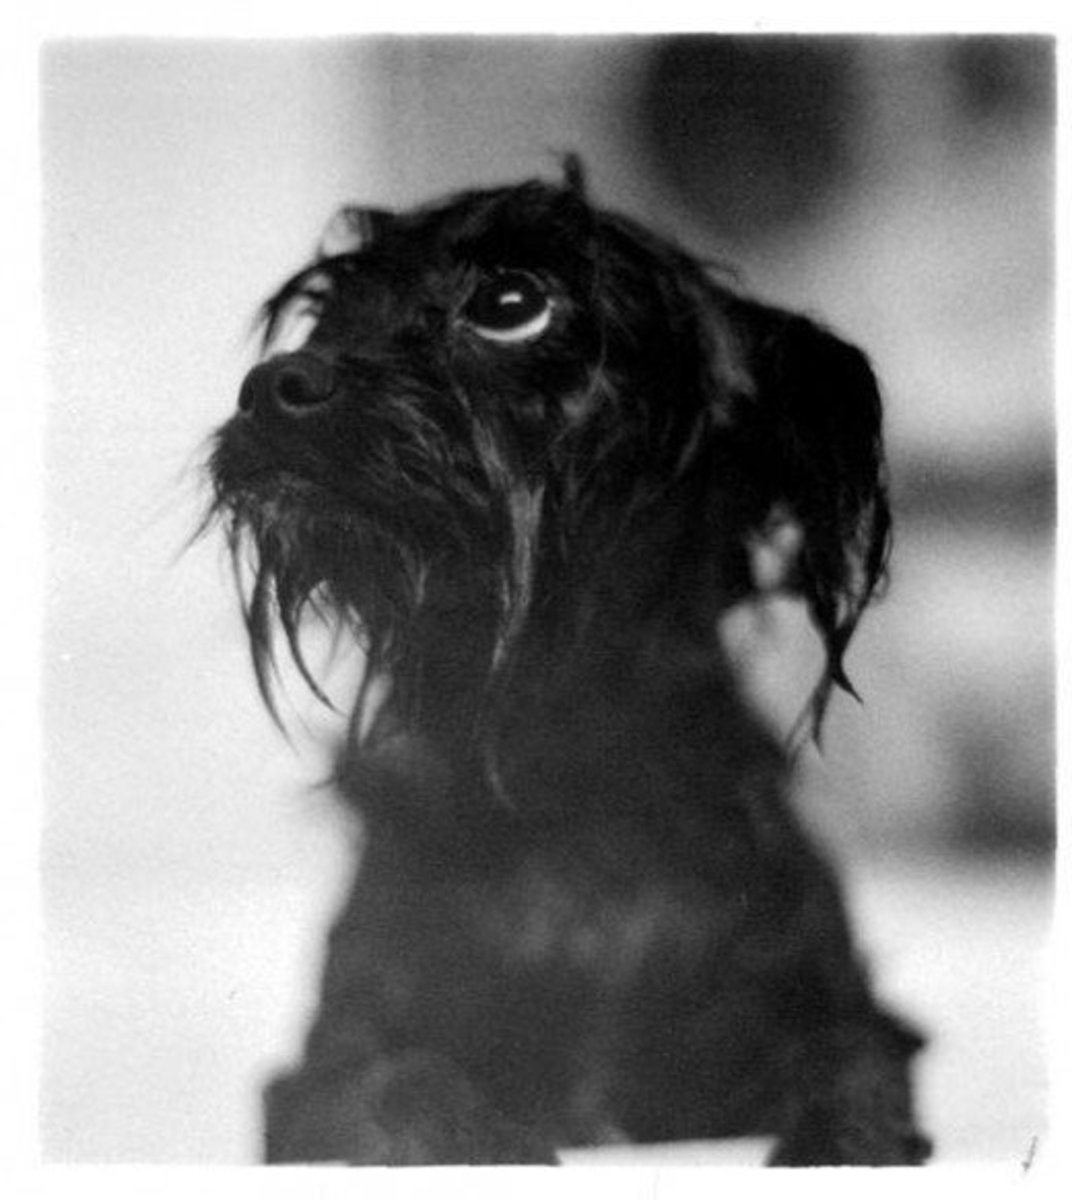 Wet monkey? The Affenpinscher's curious nature takes cuteness to the max.